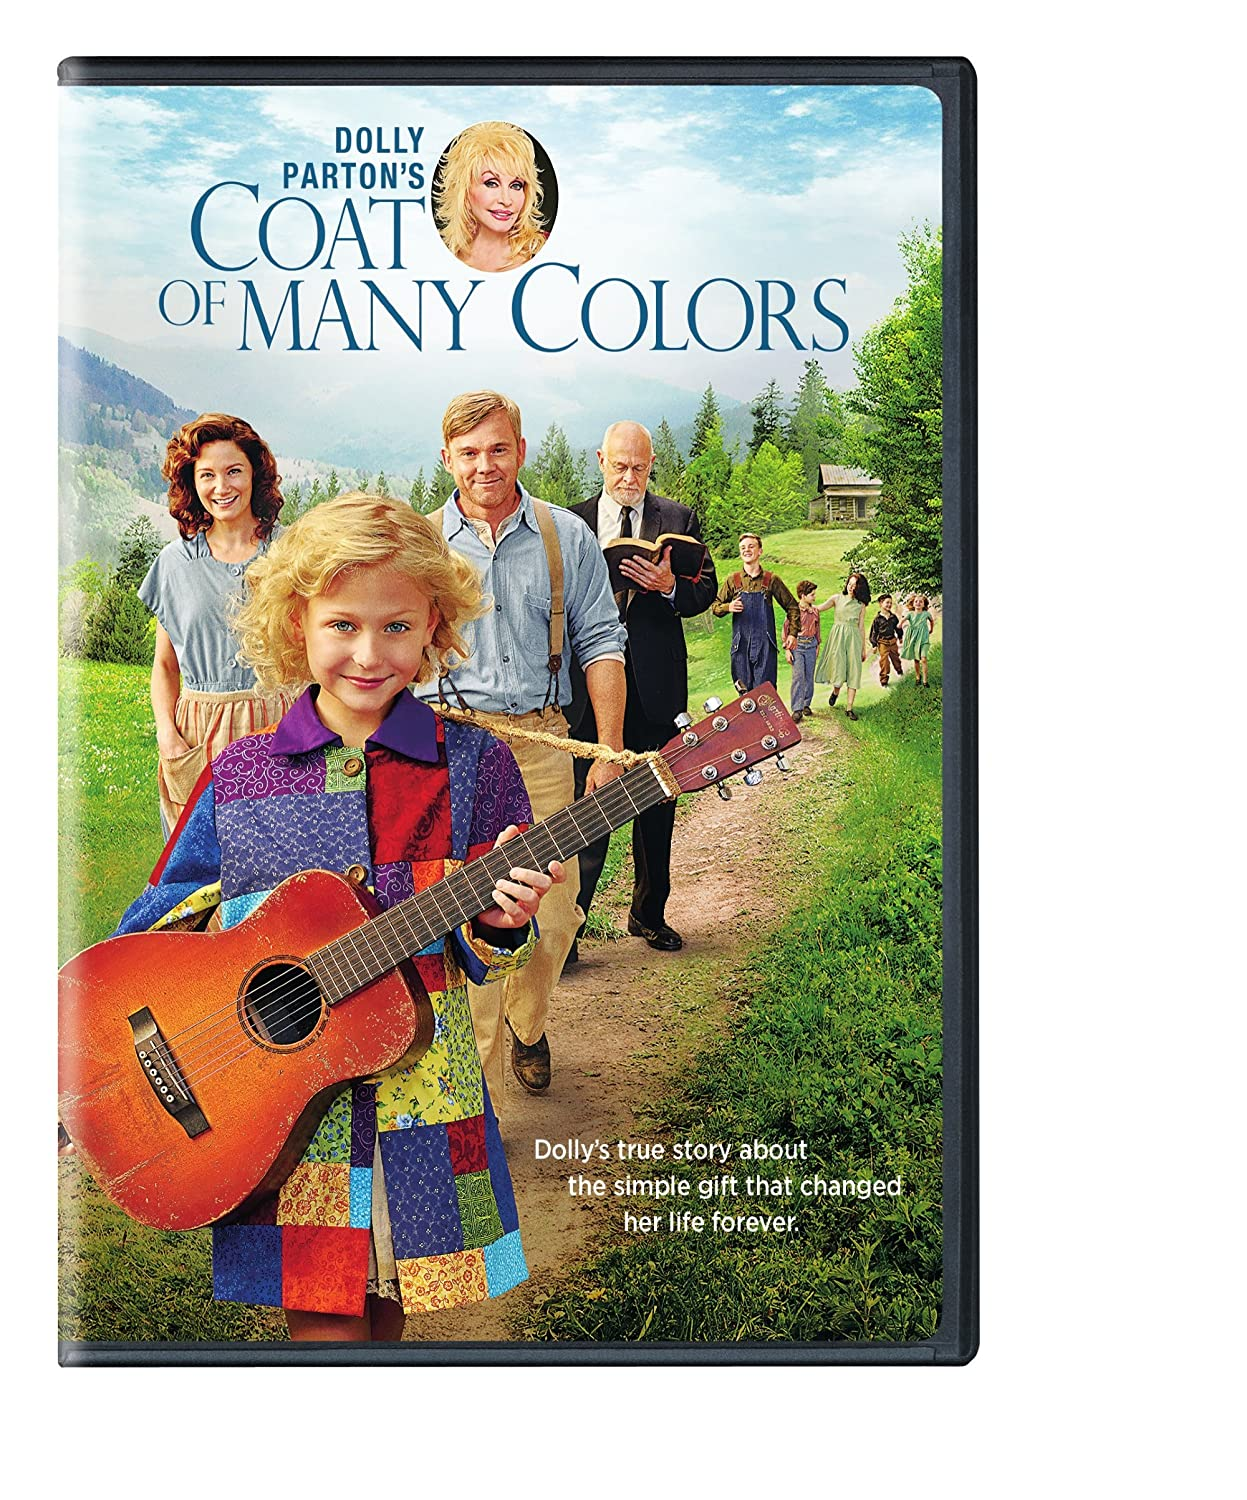 amazoncom coat of many colors 2015 pamela long dolly parton sam haskell jennifer nettles ricky schroder gerald mcraney alyvia alyn lind - Dolly Parton Coat Of Many Colors Book